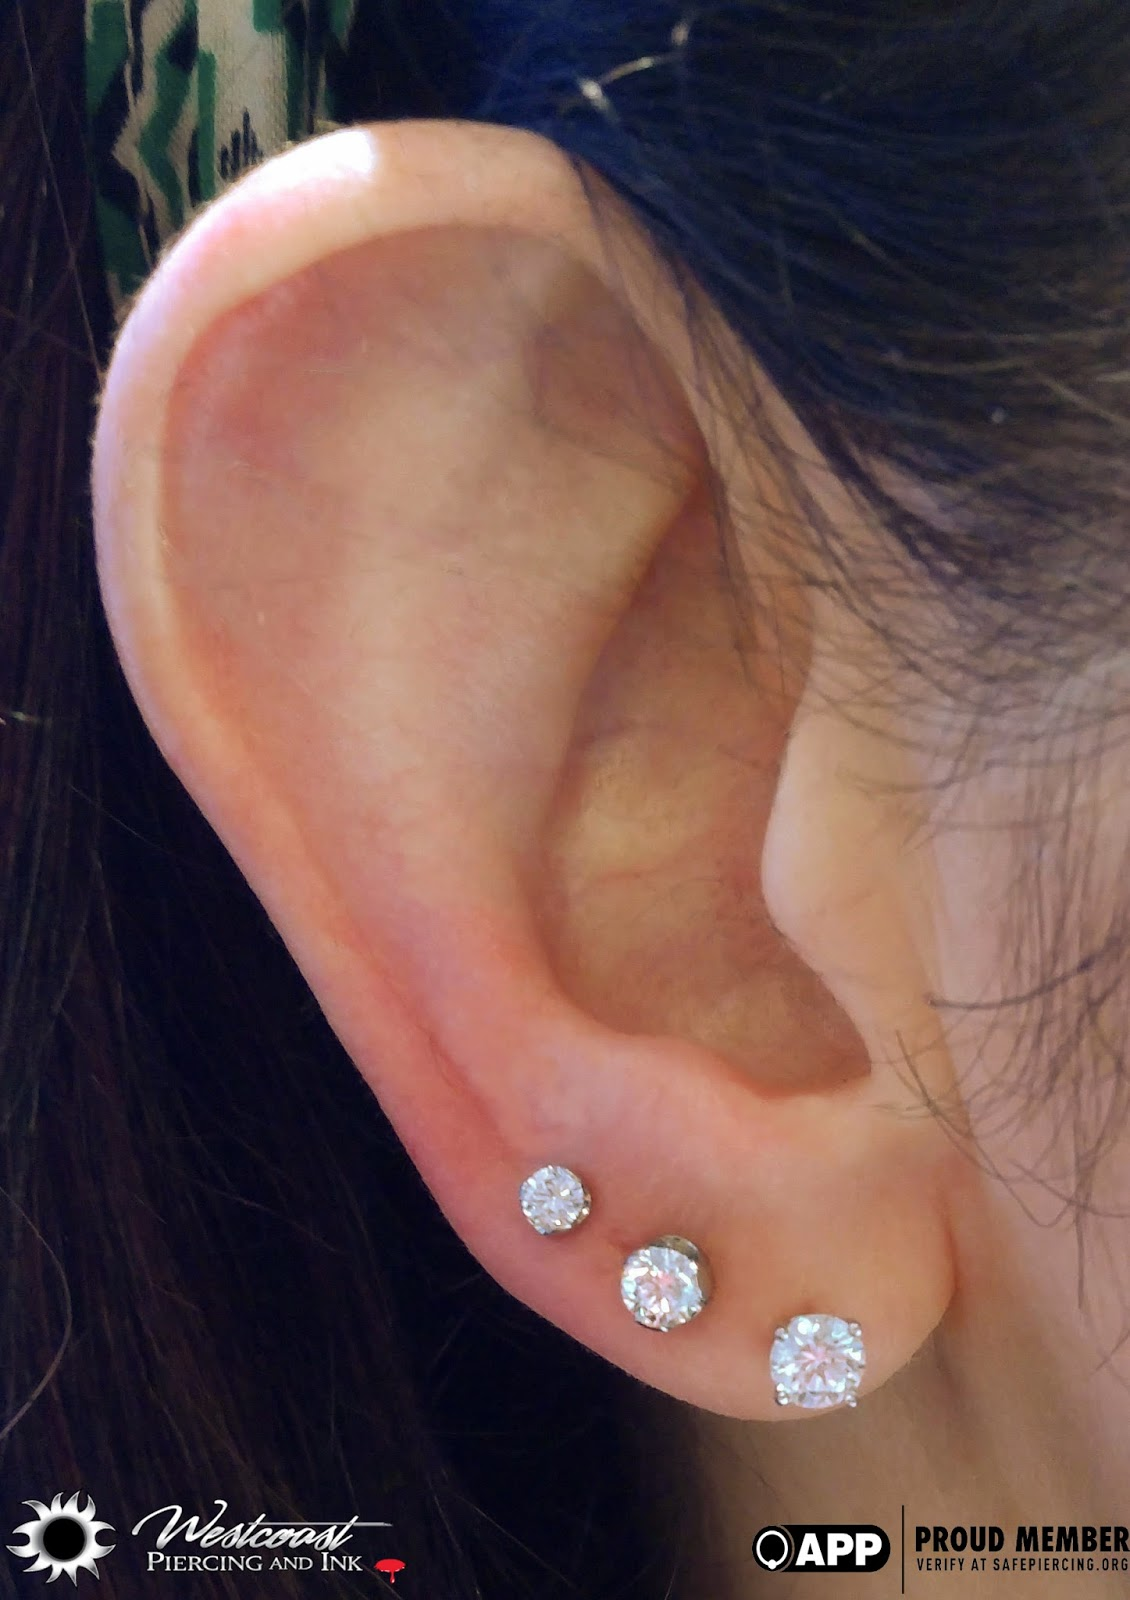 Dazzling 2nd And 3rd Lobe Piercings Done With These 18k White Gold 3 4mm Diamond Standard Earrings By Anatometal